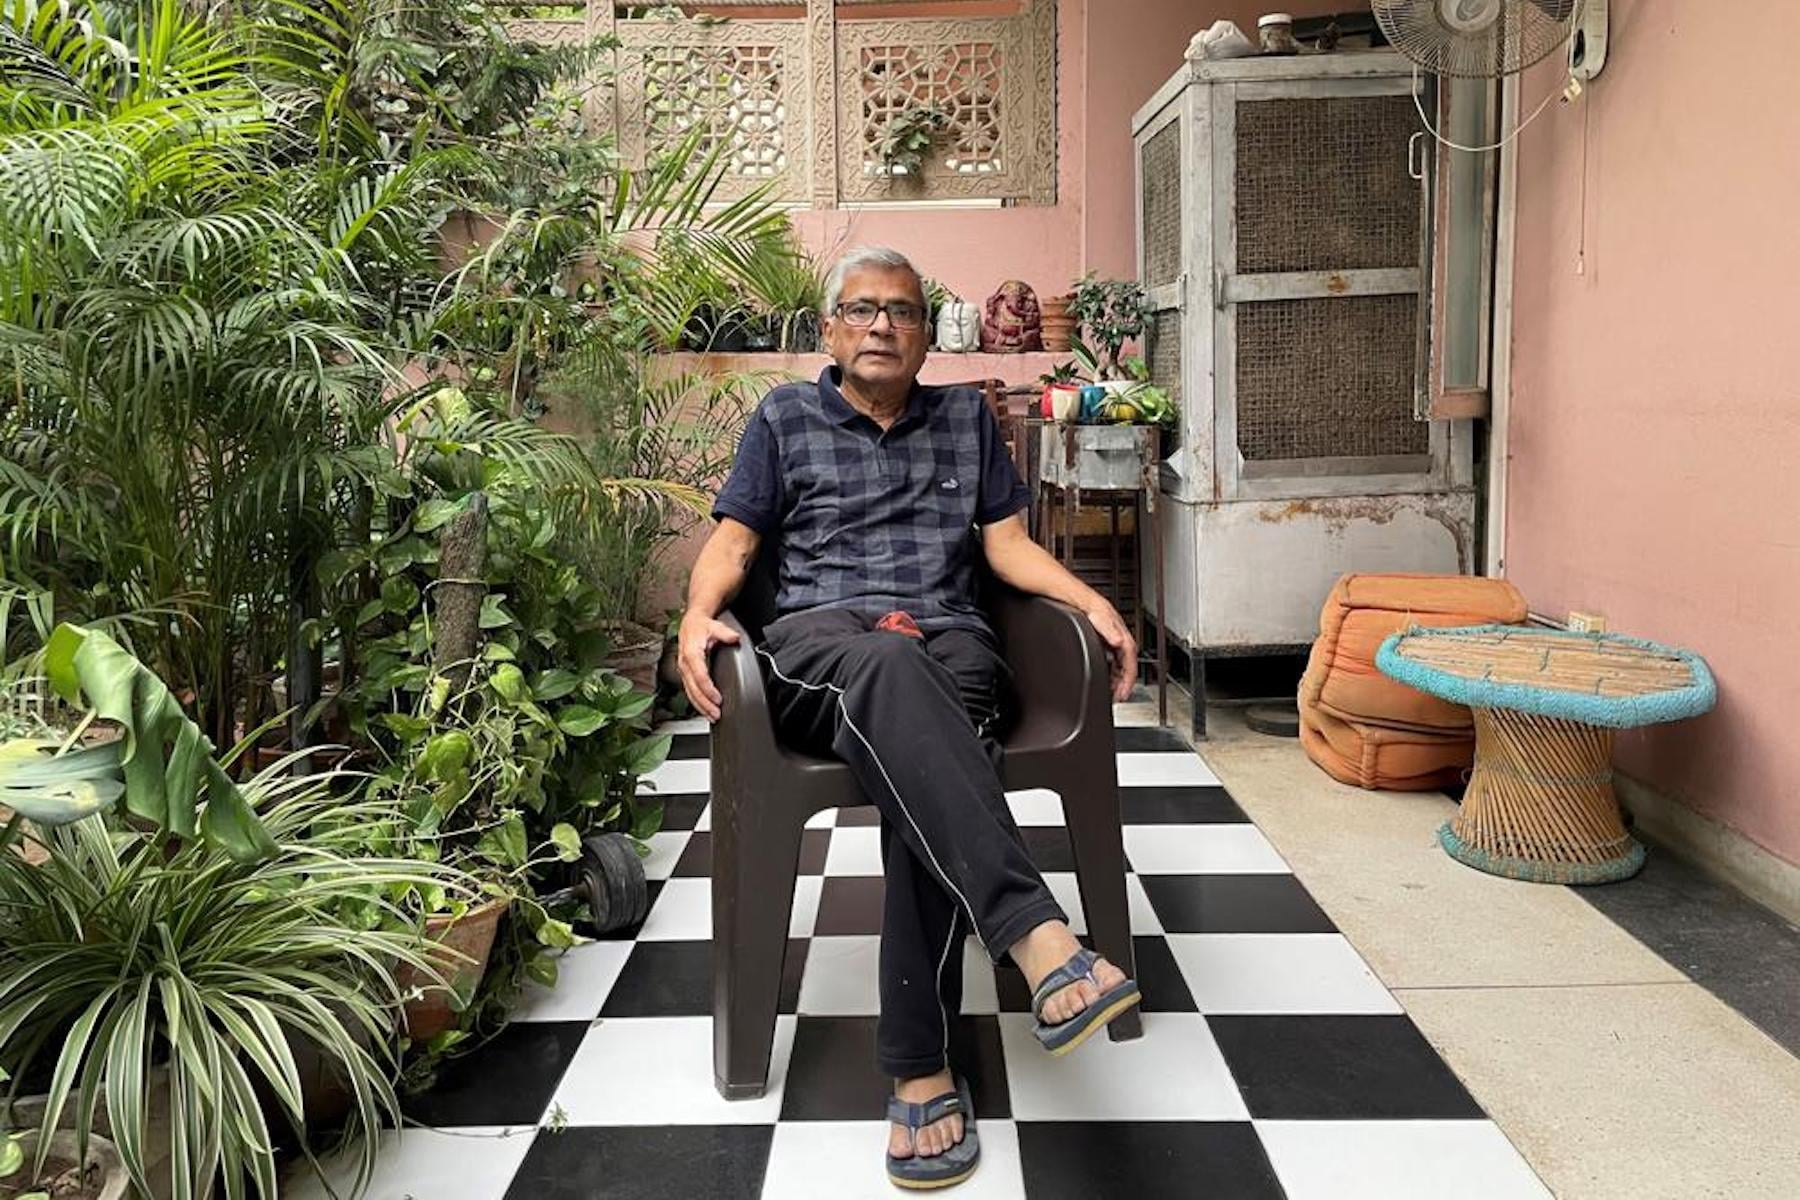 In this photo released by Chakravorty family, Prabir Chakravorty, 73, a Covid-19 survivor, sits in the garden area of his home in New Delhi, India on May 17, 2021. Chakravorty, the family patriarch and widower, a construction executive was treated at home for the coronavirus. — Chakravorty family via AP